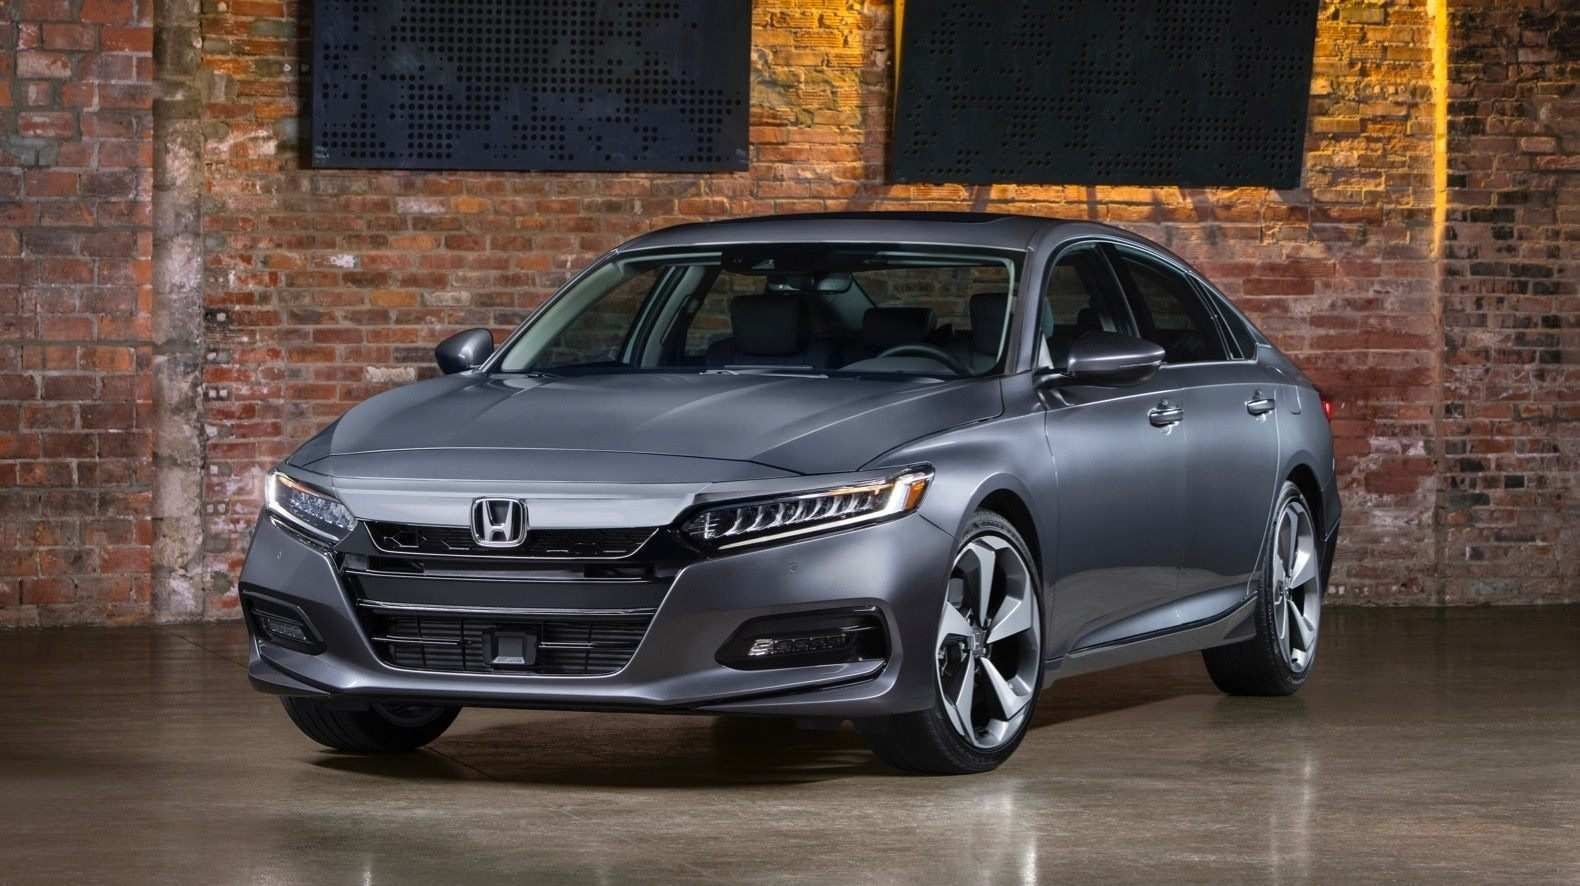 15 All New 2020 Honda Accord Coupe Configurations